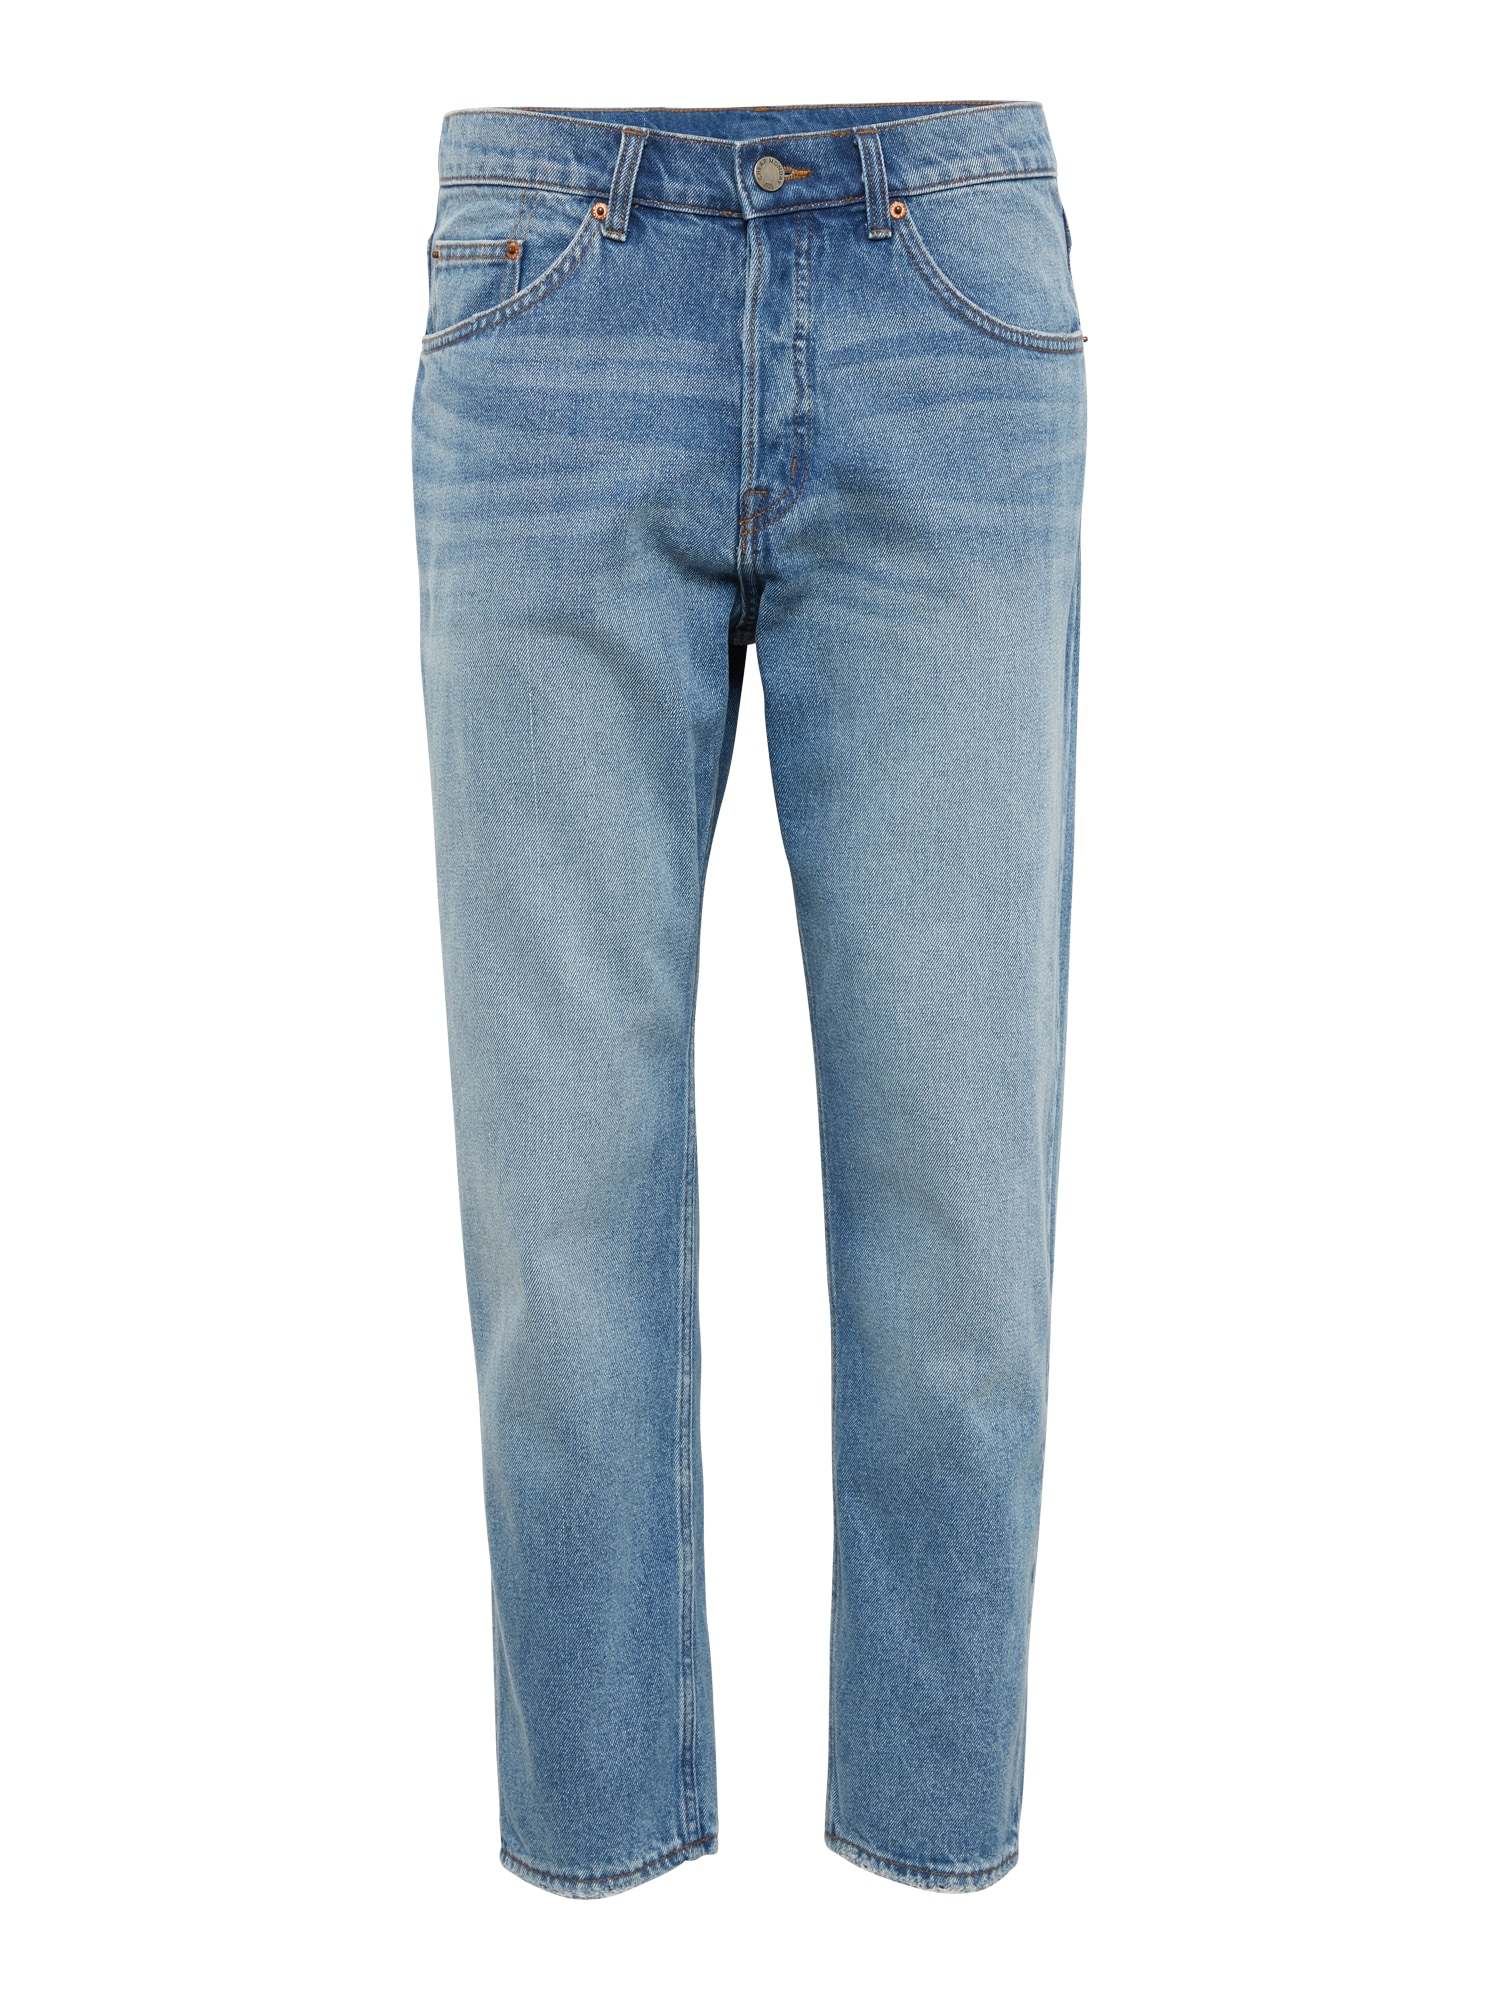 CHEAP MONDAY Heren Jeans In Law blue denim